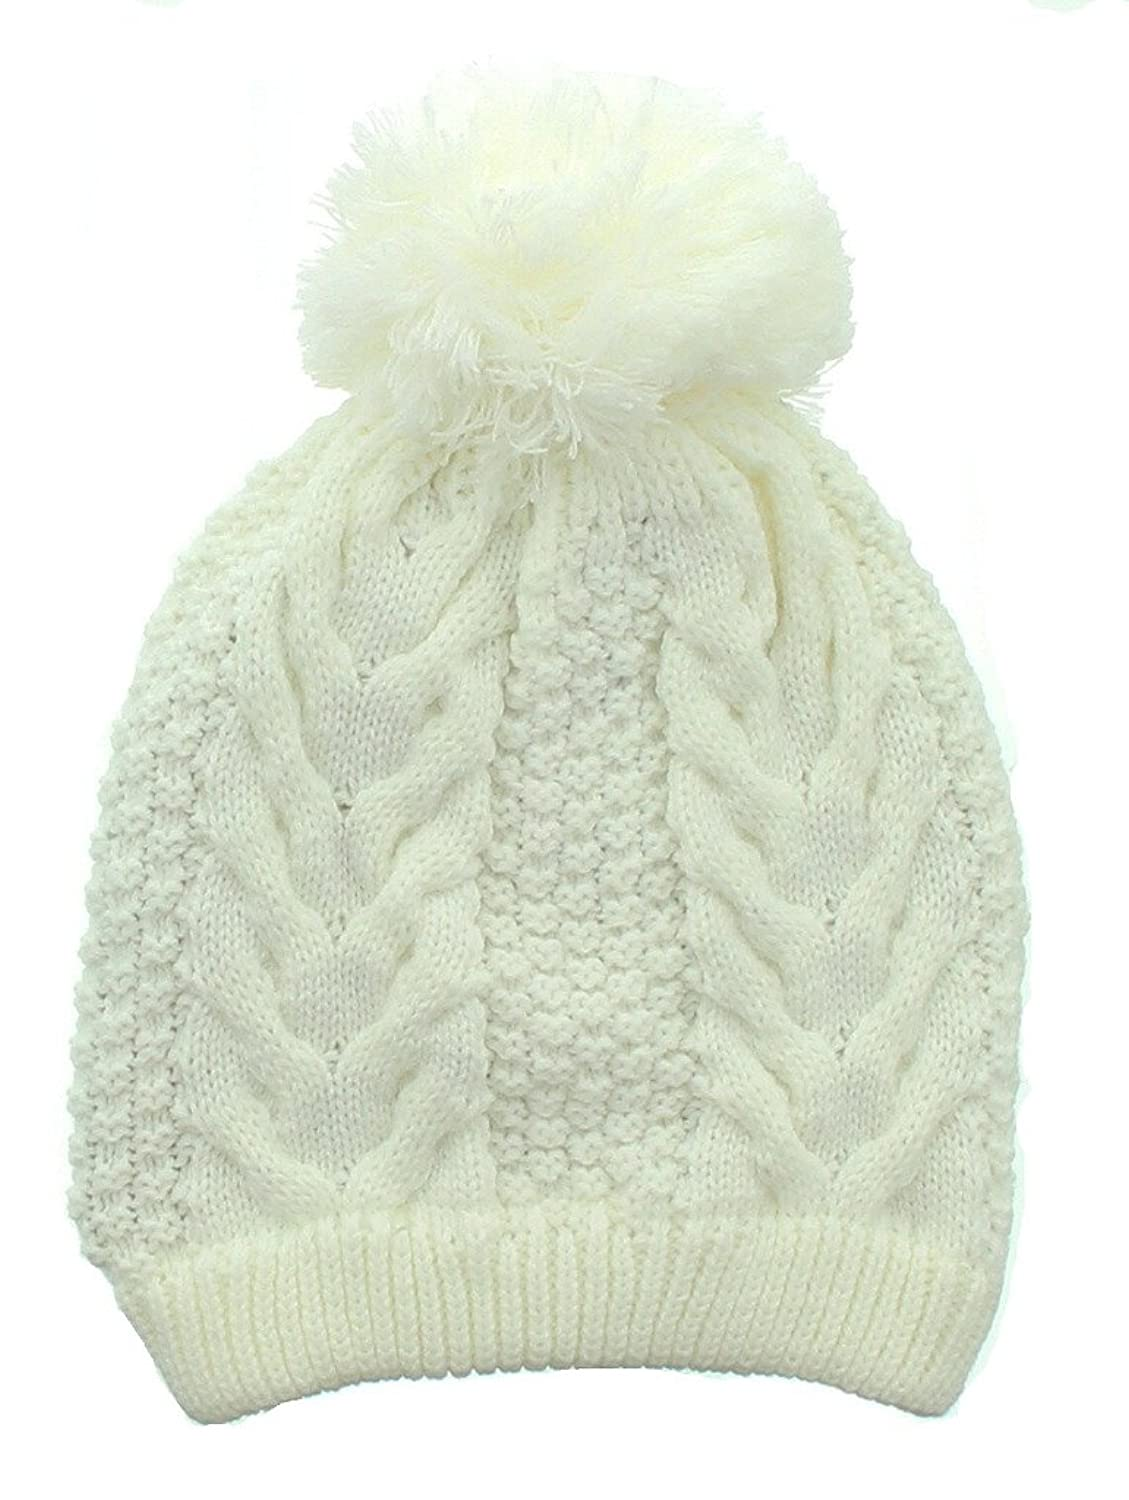 Milani Ribbed Cable Winter Wonderland Beanie with Pom Pom